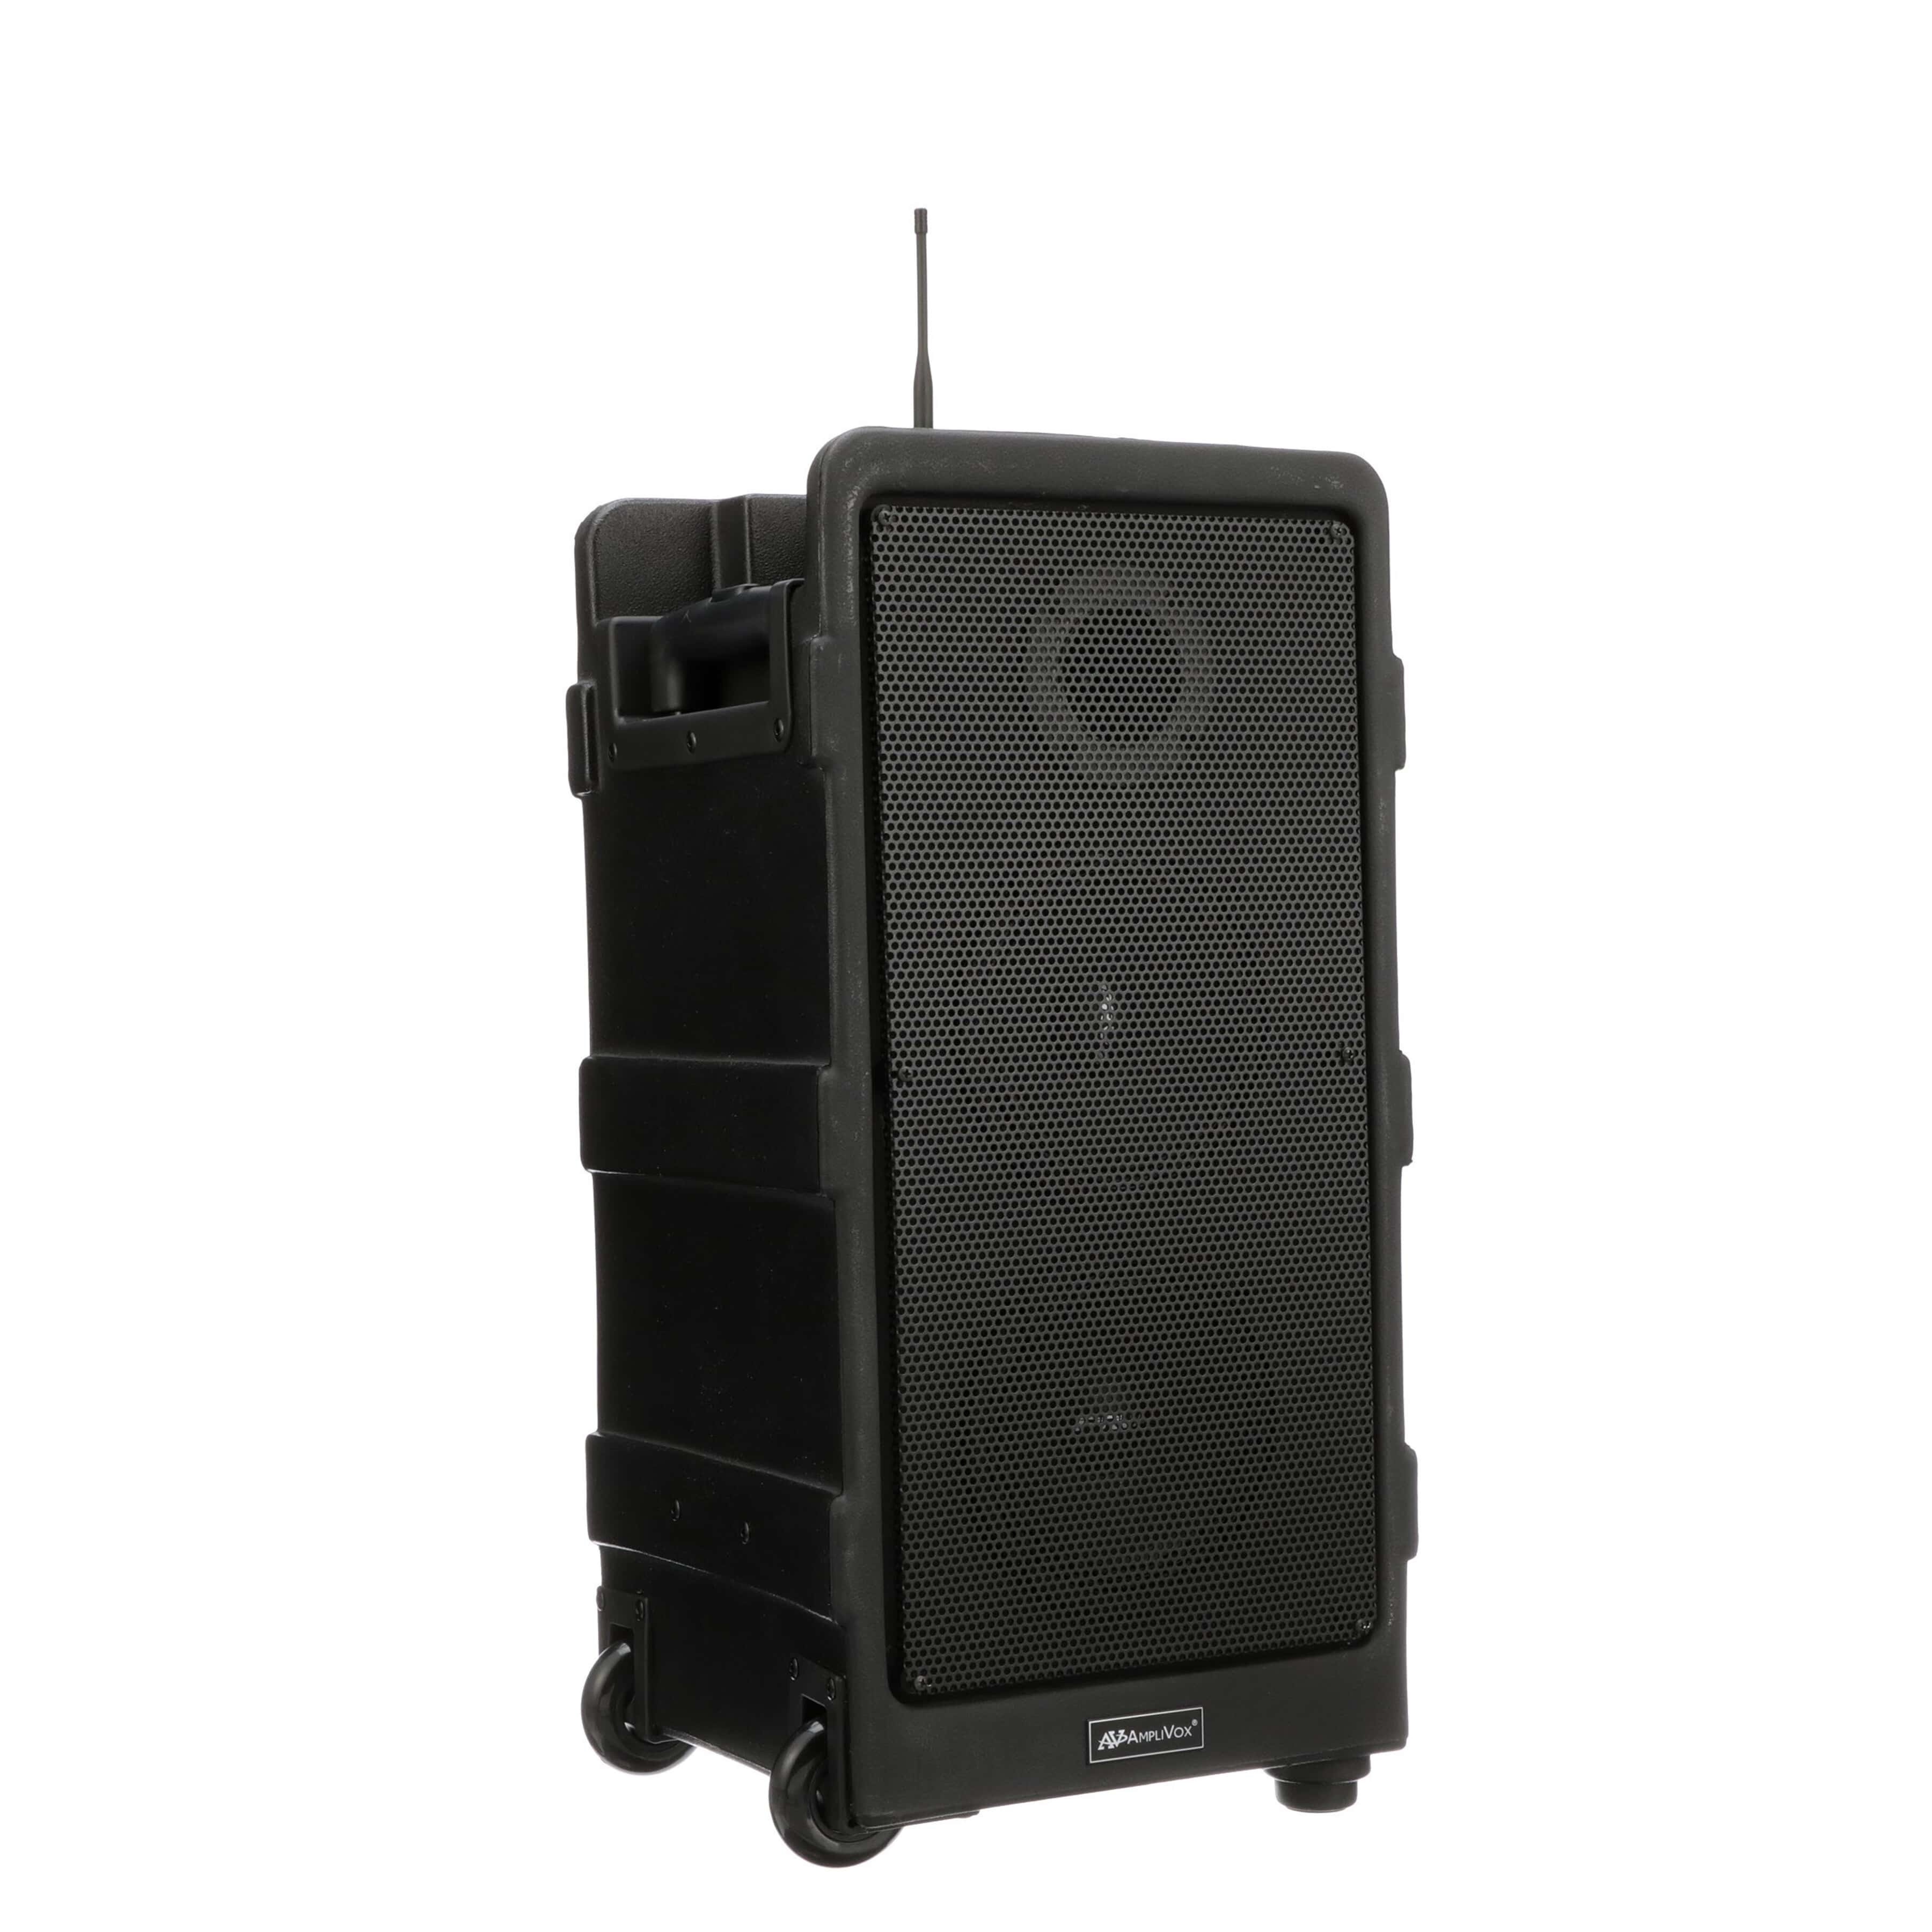 Sw925 Digital Audio Travel Partner Plus Wireless Portable Pa System Cable Neutrik Xlr 1 4quot Combo Jacks And Phantom Power Sound Design Swipe To Spin